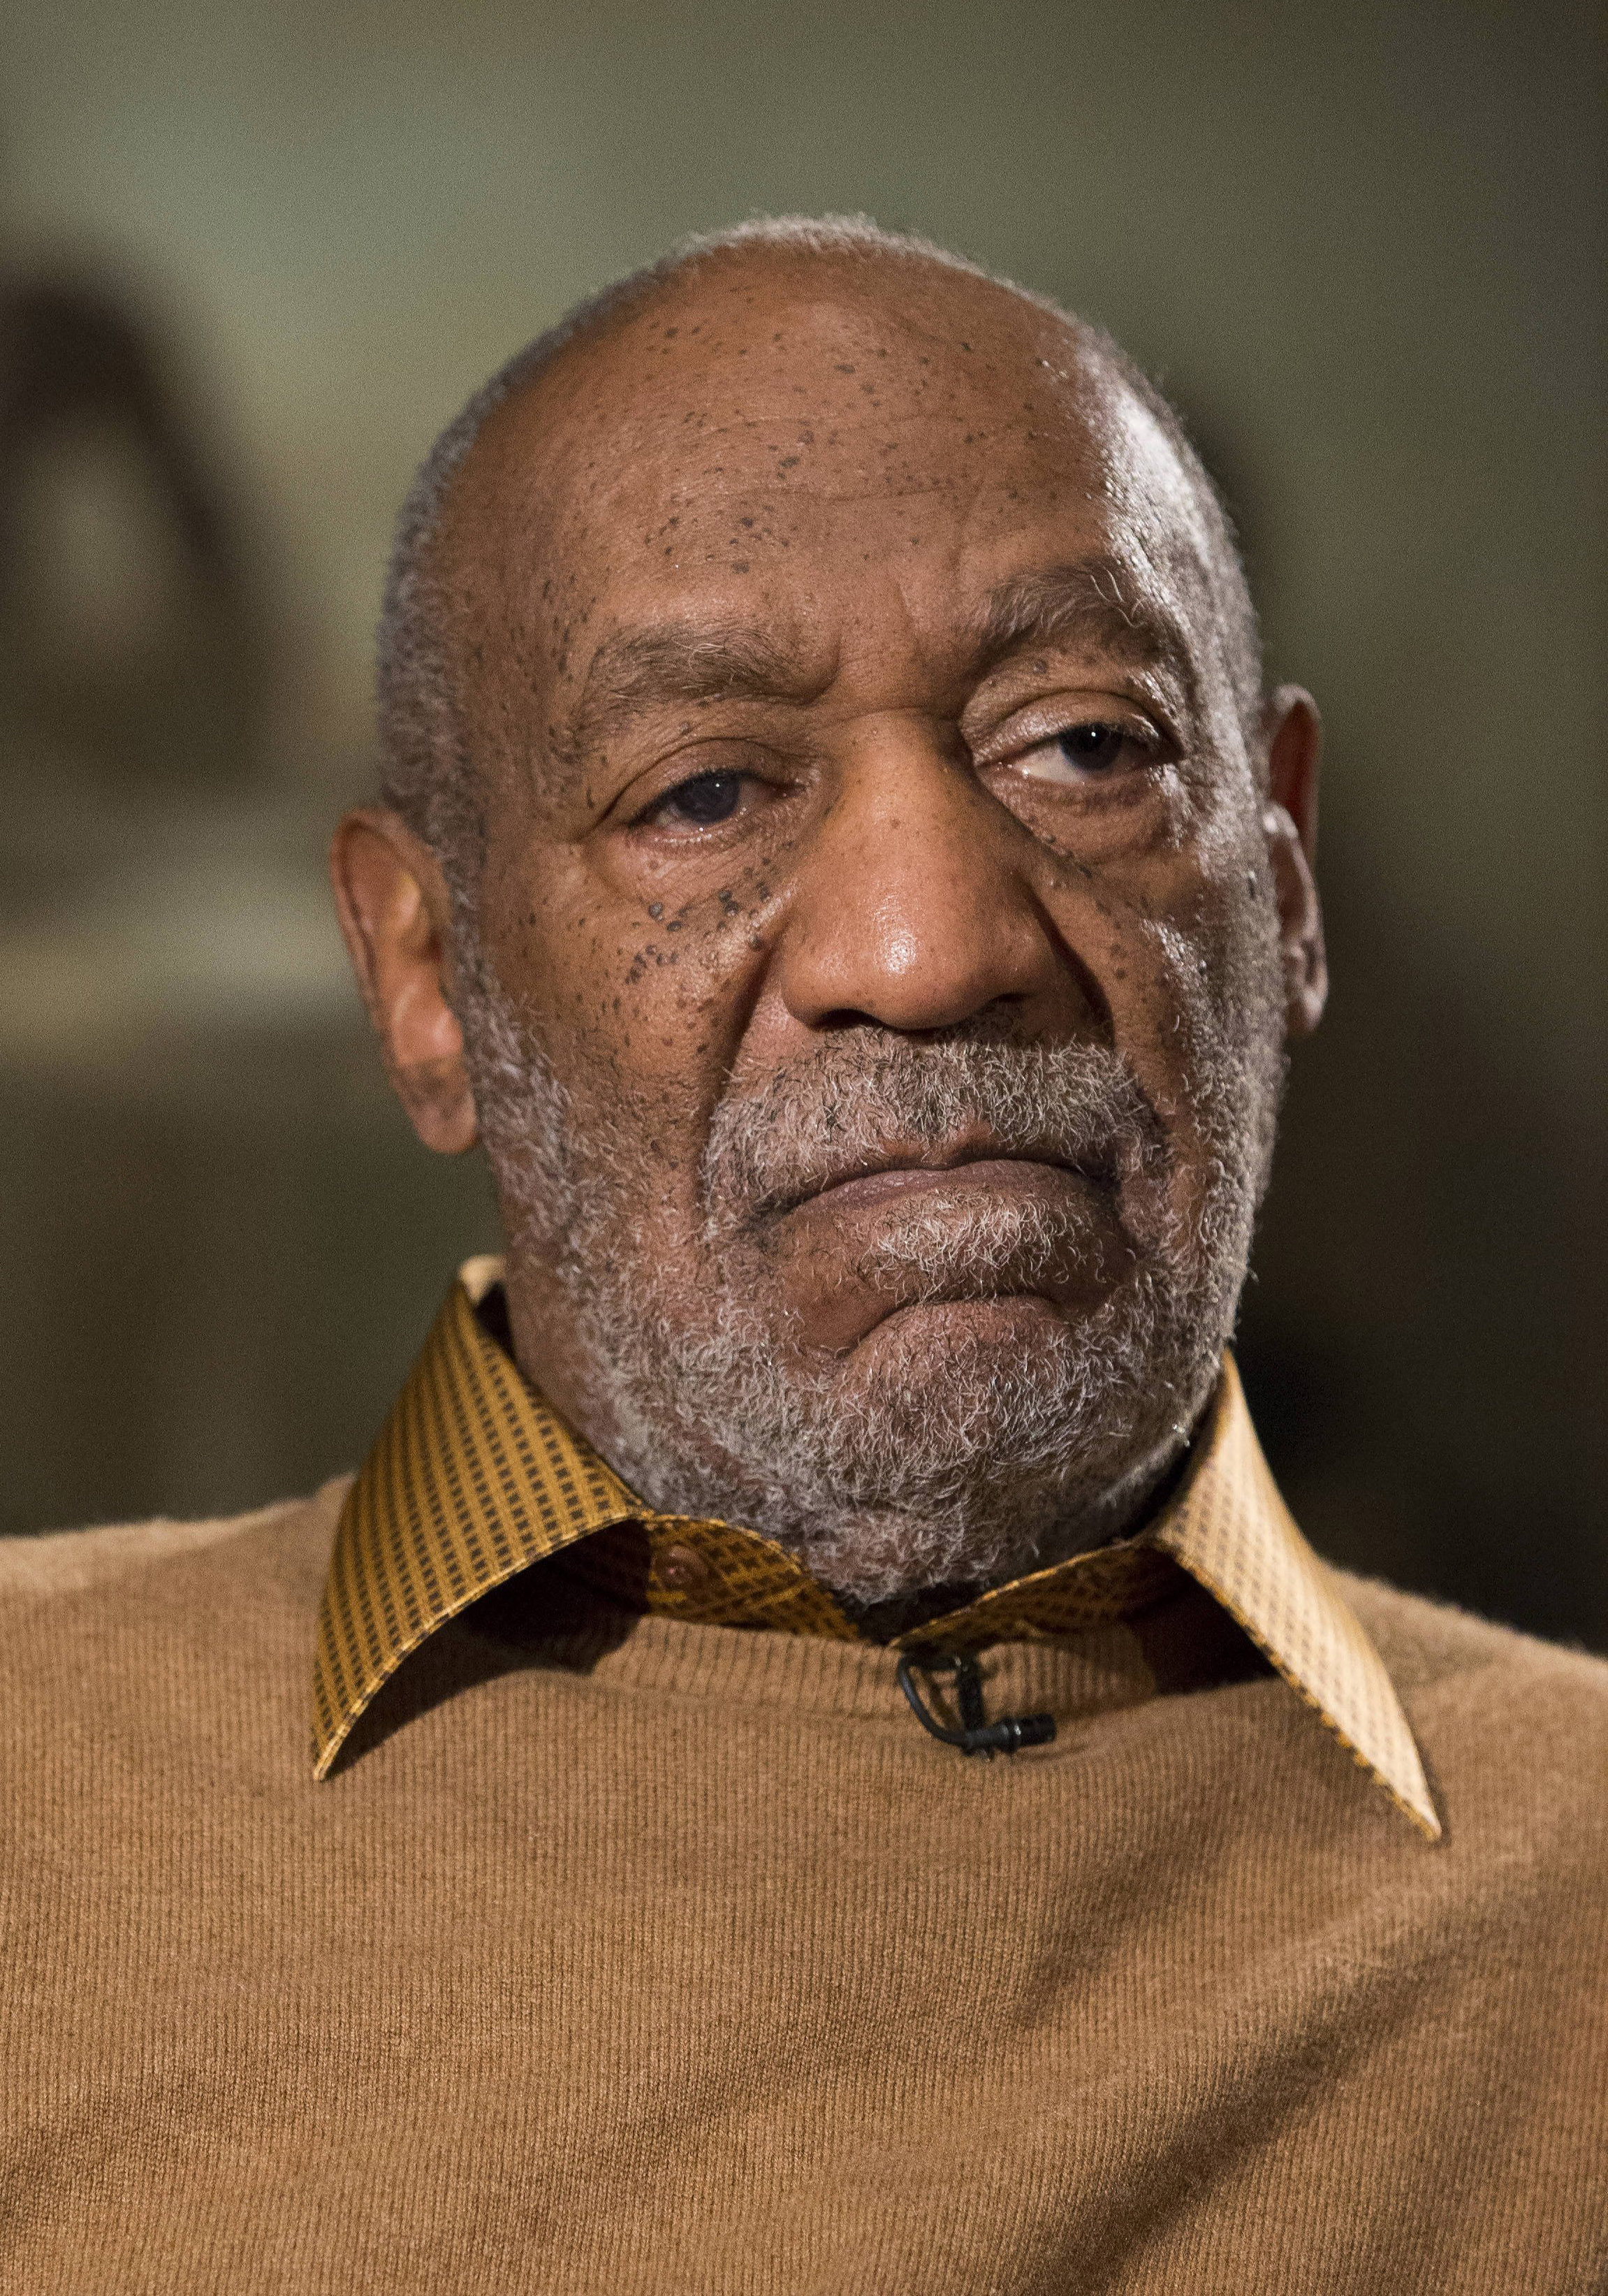 Bill Cosby during an interview about the upcoming exhibit  Conversations: African and African-American Artworks in Dialogue,  at the Smithsonian's National Museum of African Art in Washington D.C. on Nov. 6, 2014